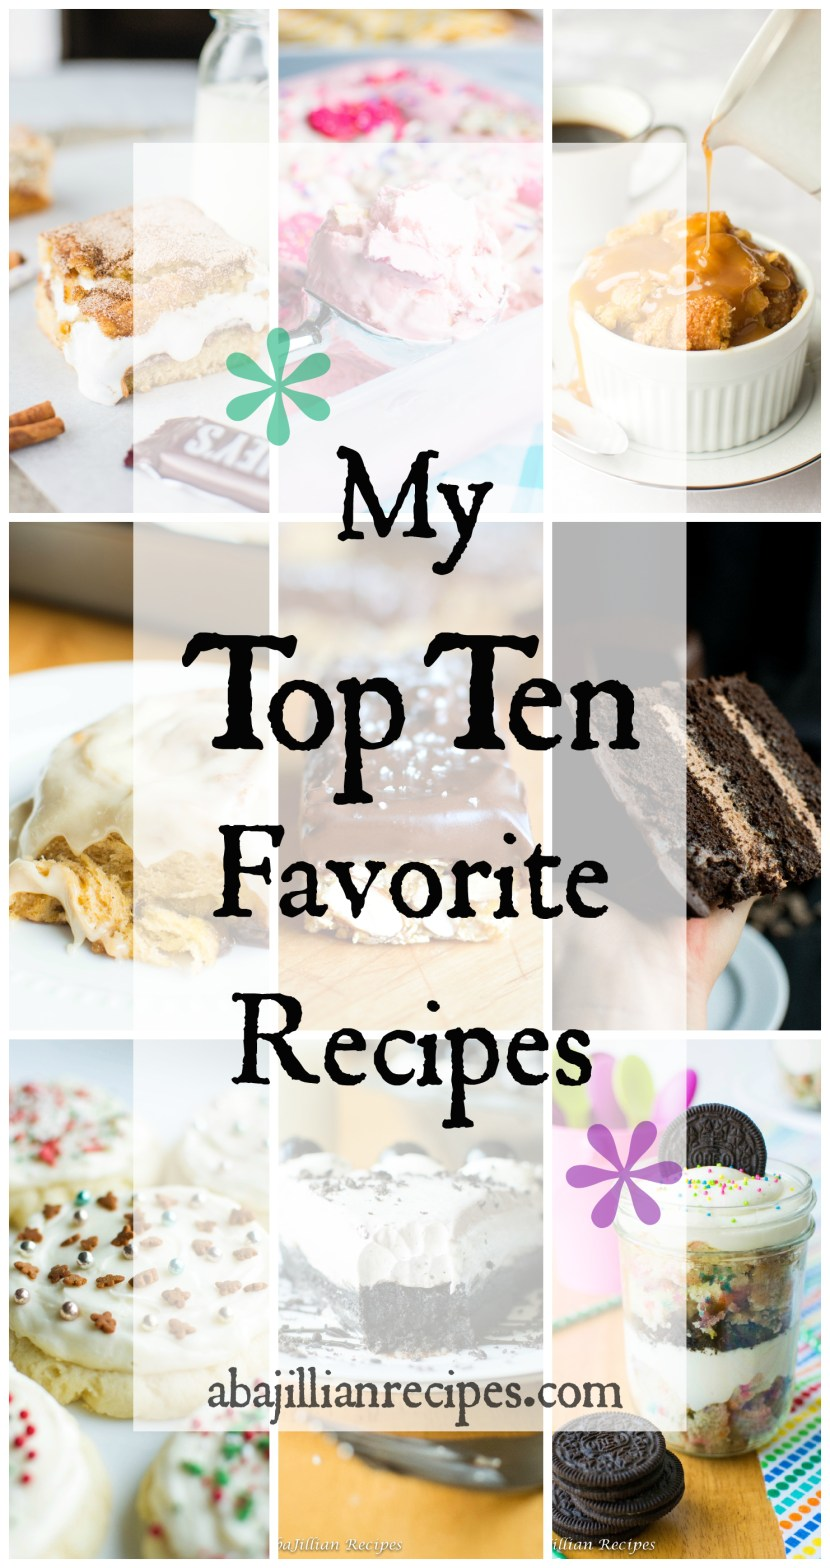 Top Ten | A baJillian Recipes